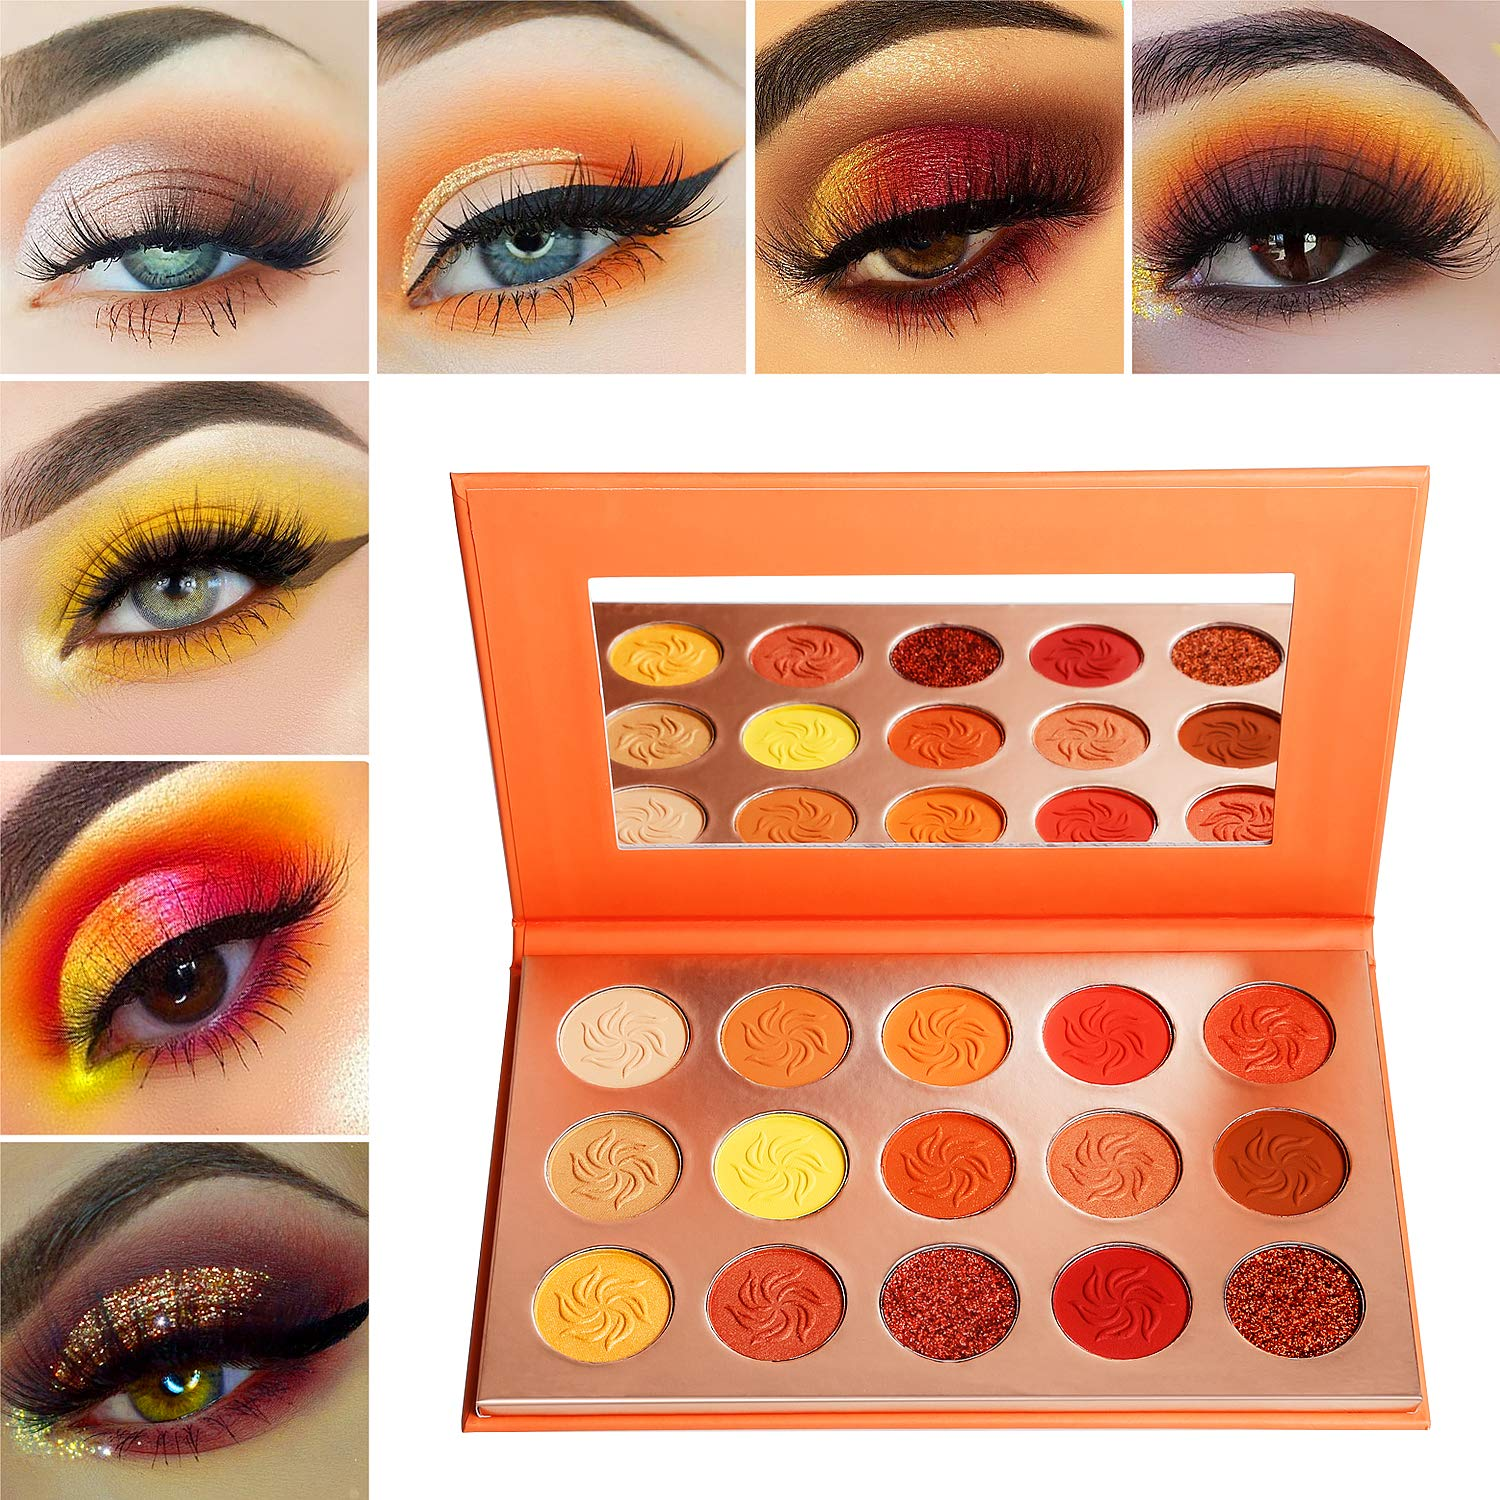 Red Orange Eyeshadow Palette Sunset 15 Color,Afflano Pro Highly Pigmented  Glam Fall Eye Shadow Makeup Palettes,Nudetude Neutral Brown Yellow Gold